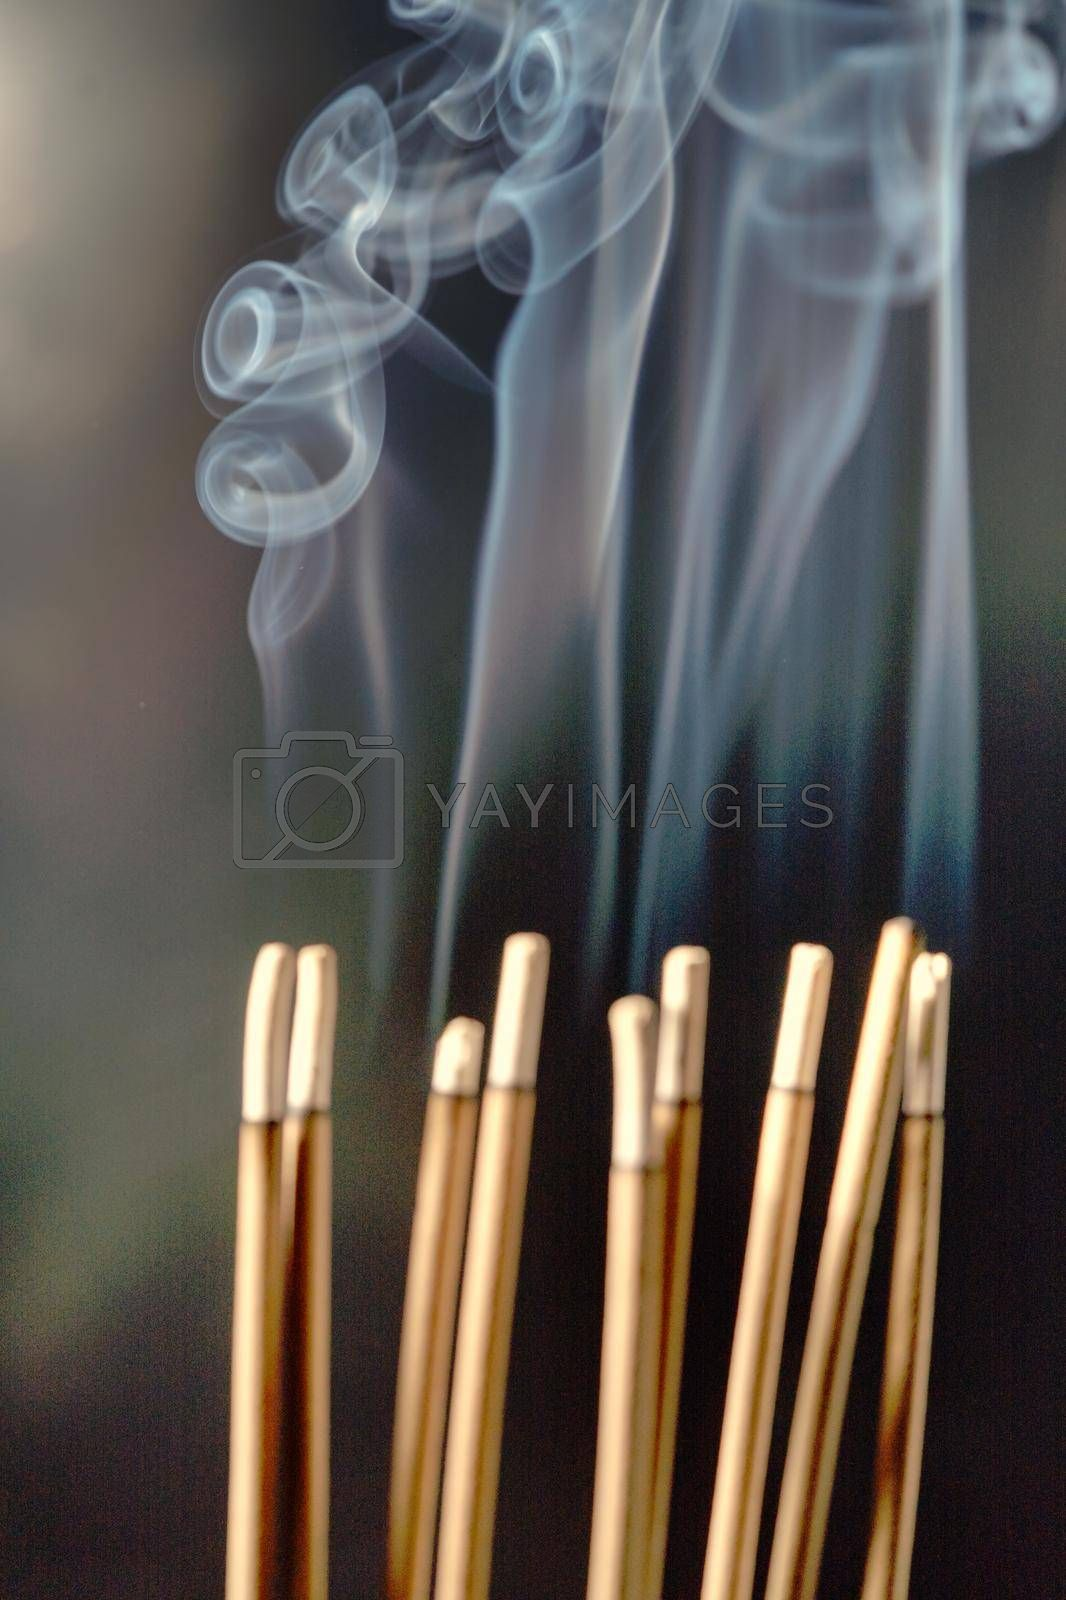 Burning incense, white smoke, black background, used as a worship background image, a sacred object of Buddhist beliefs, focus on the smoke.